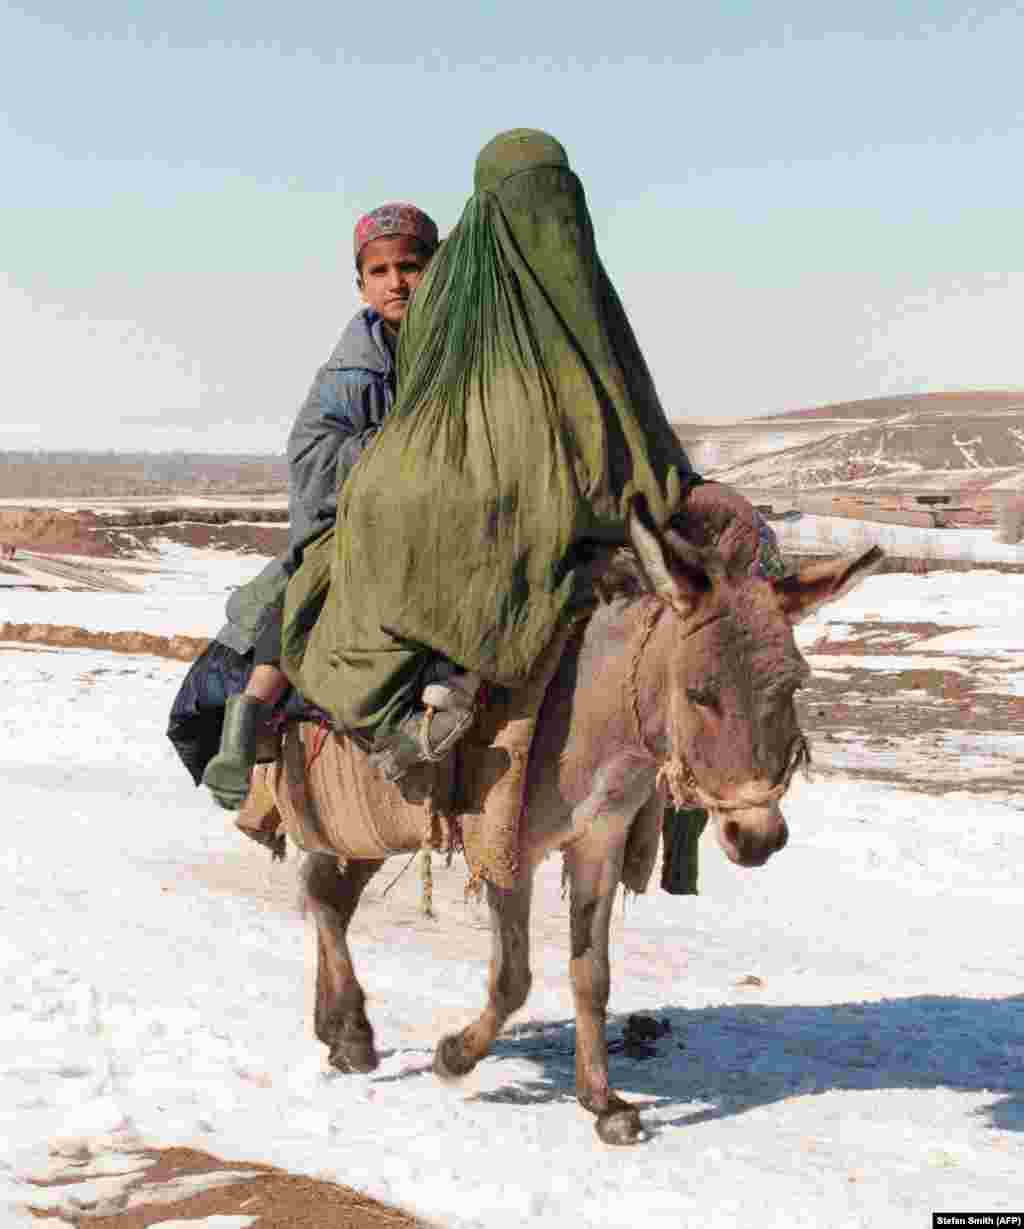 A veiled woman riding a donkey with a young boy. Under Taliban rule, women were required to wear such clothing outside at all times, and could only leave their houses with a male relative.